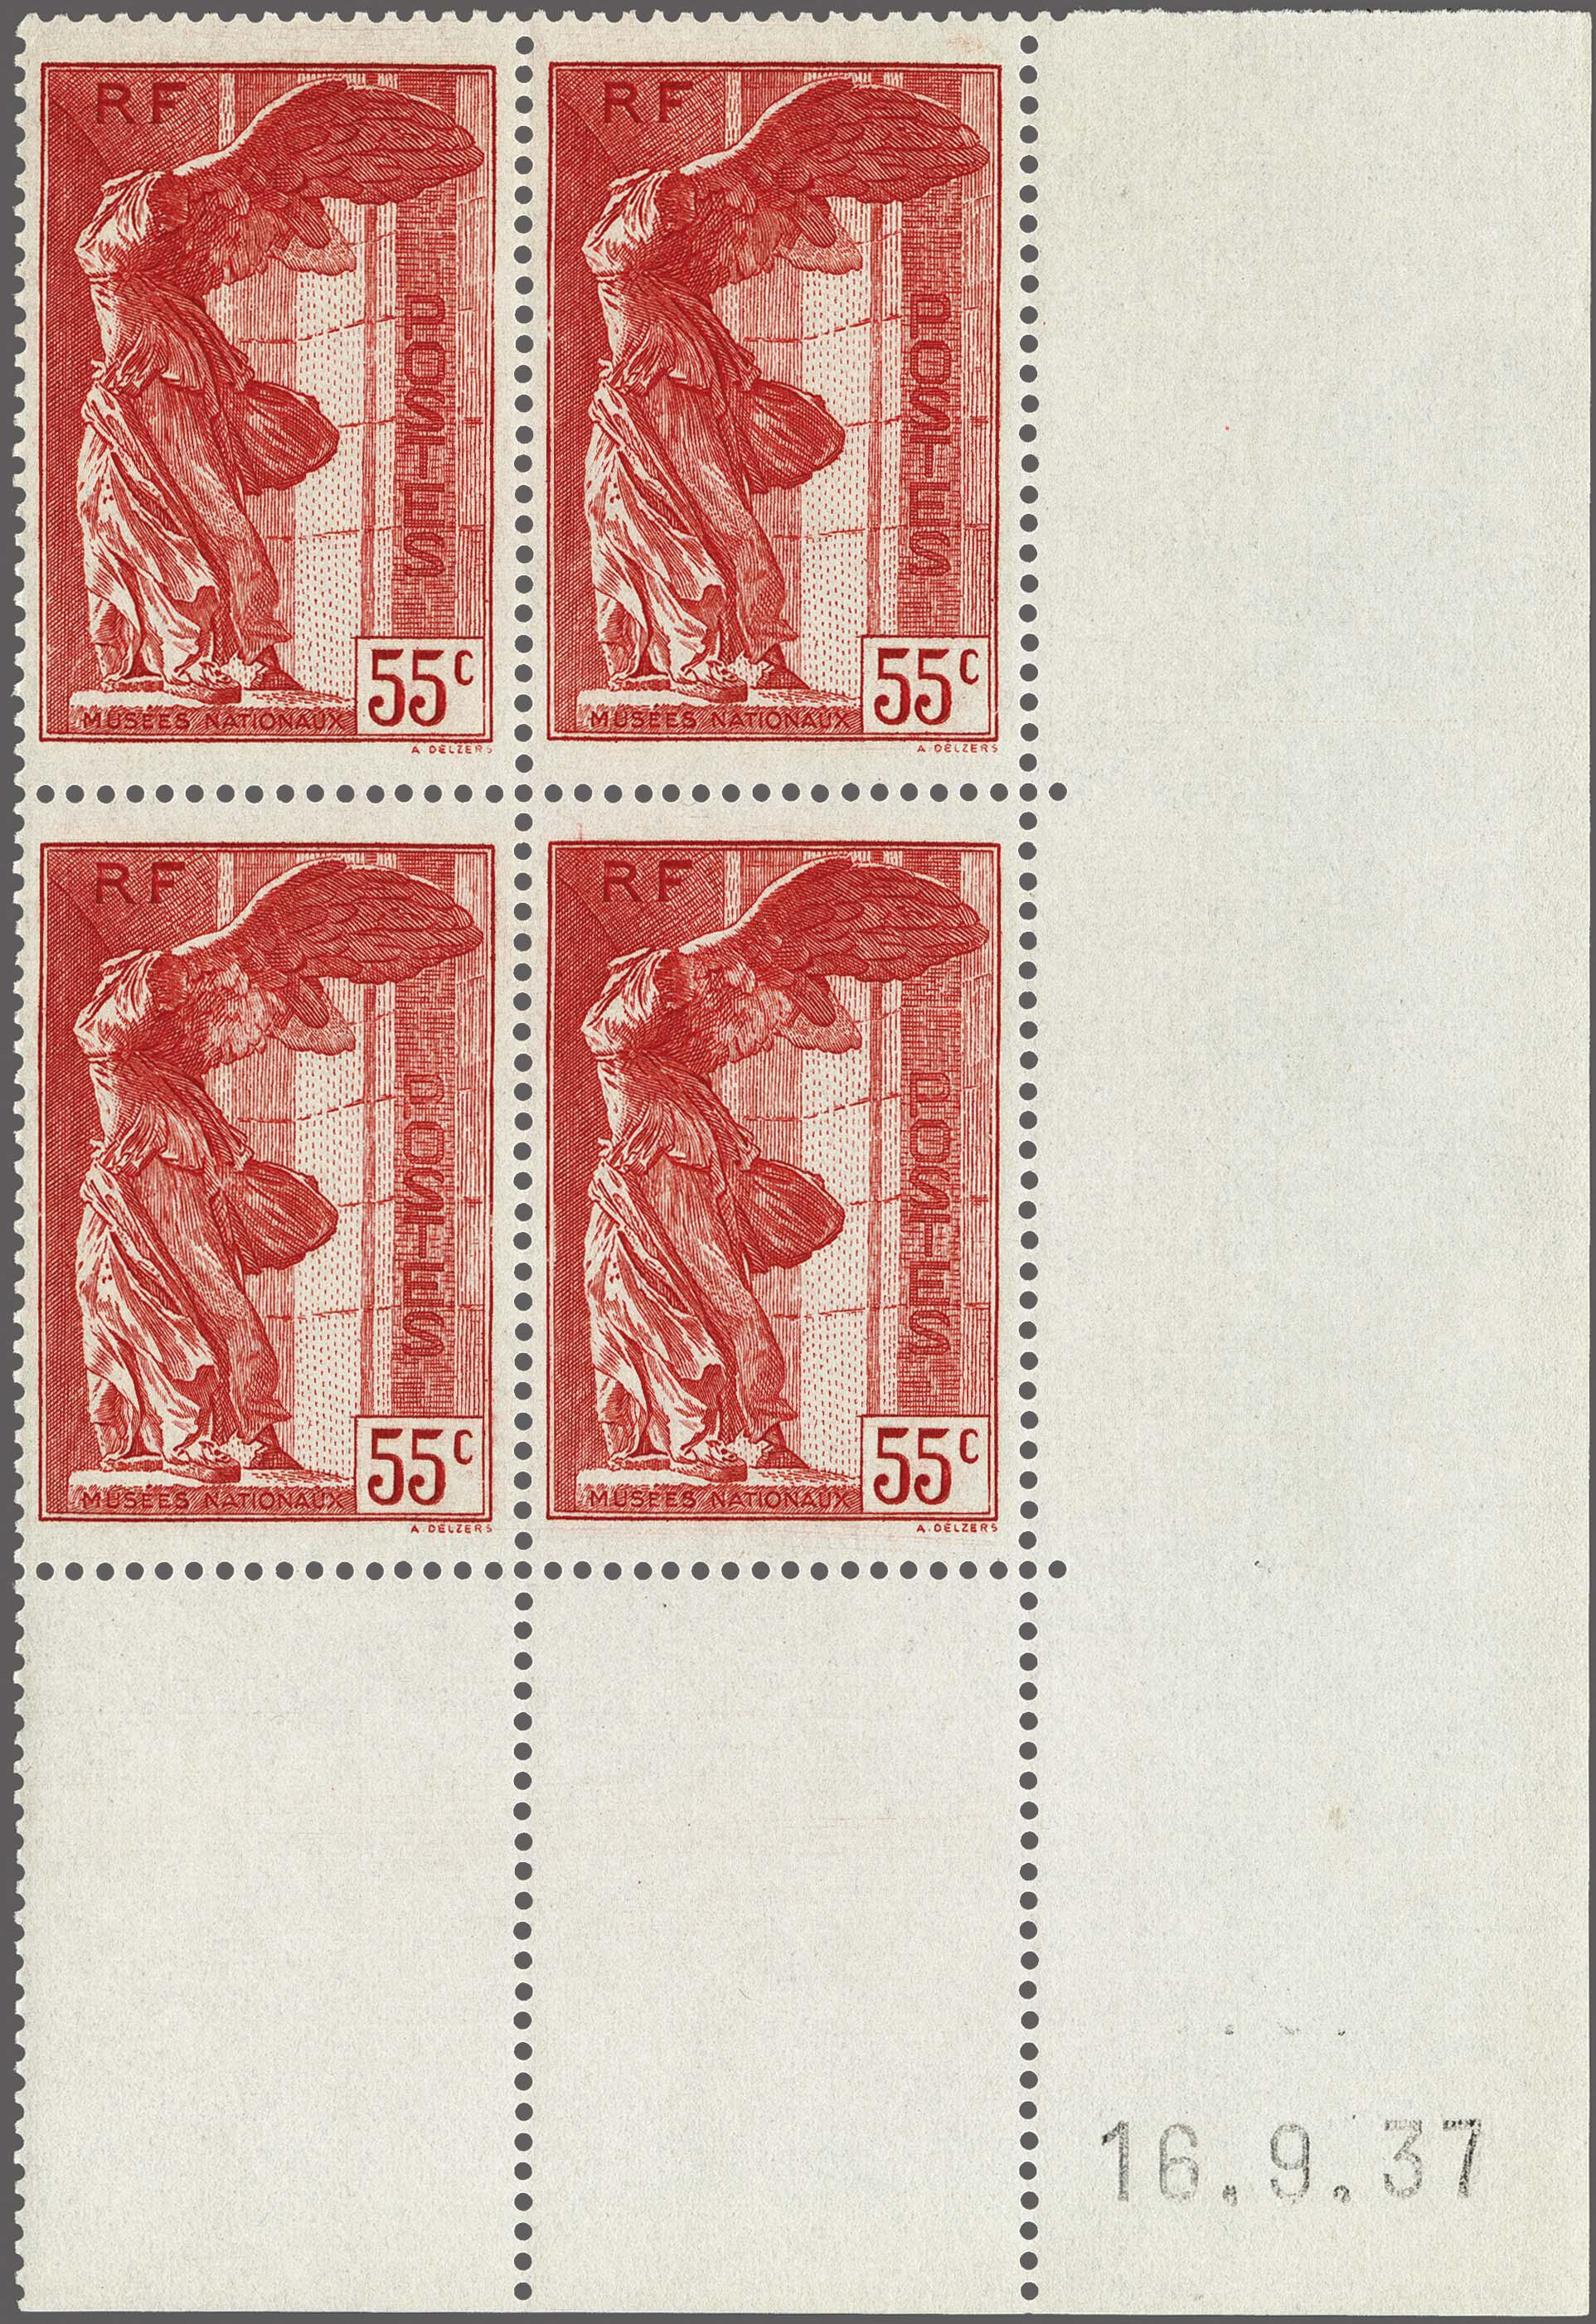 Lot 101 - France and former colonies France -  Corinphila Veilingen Auction 250-253 - Day 1 - Foreign countries